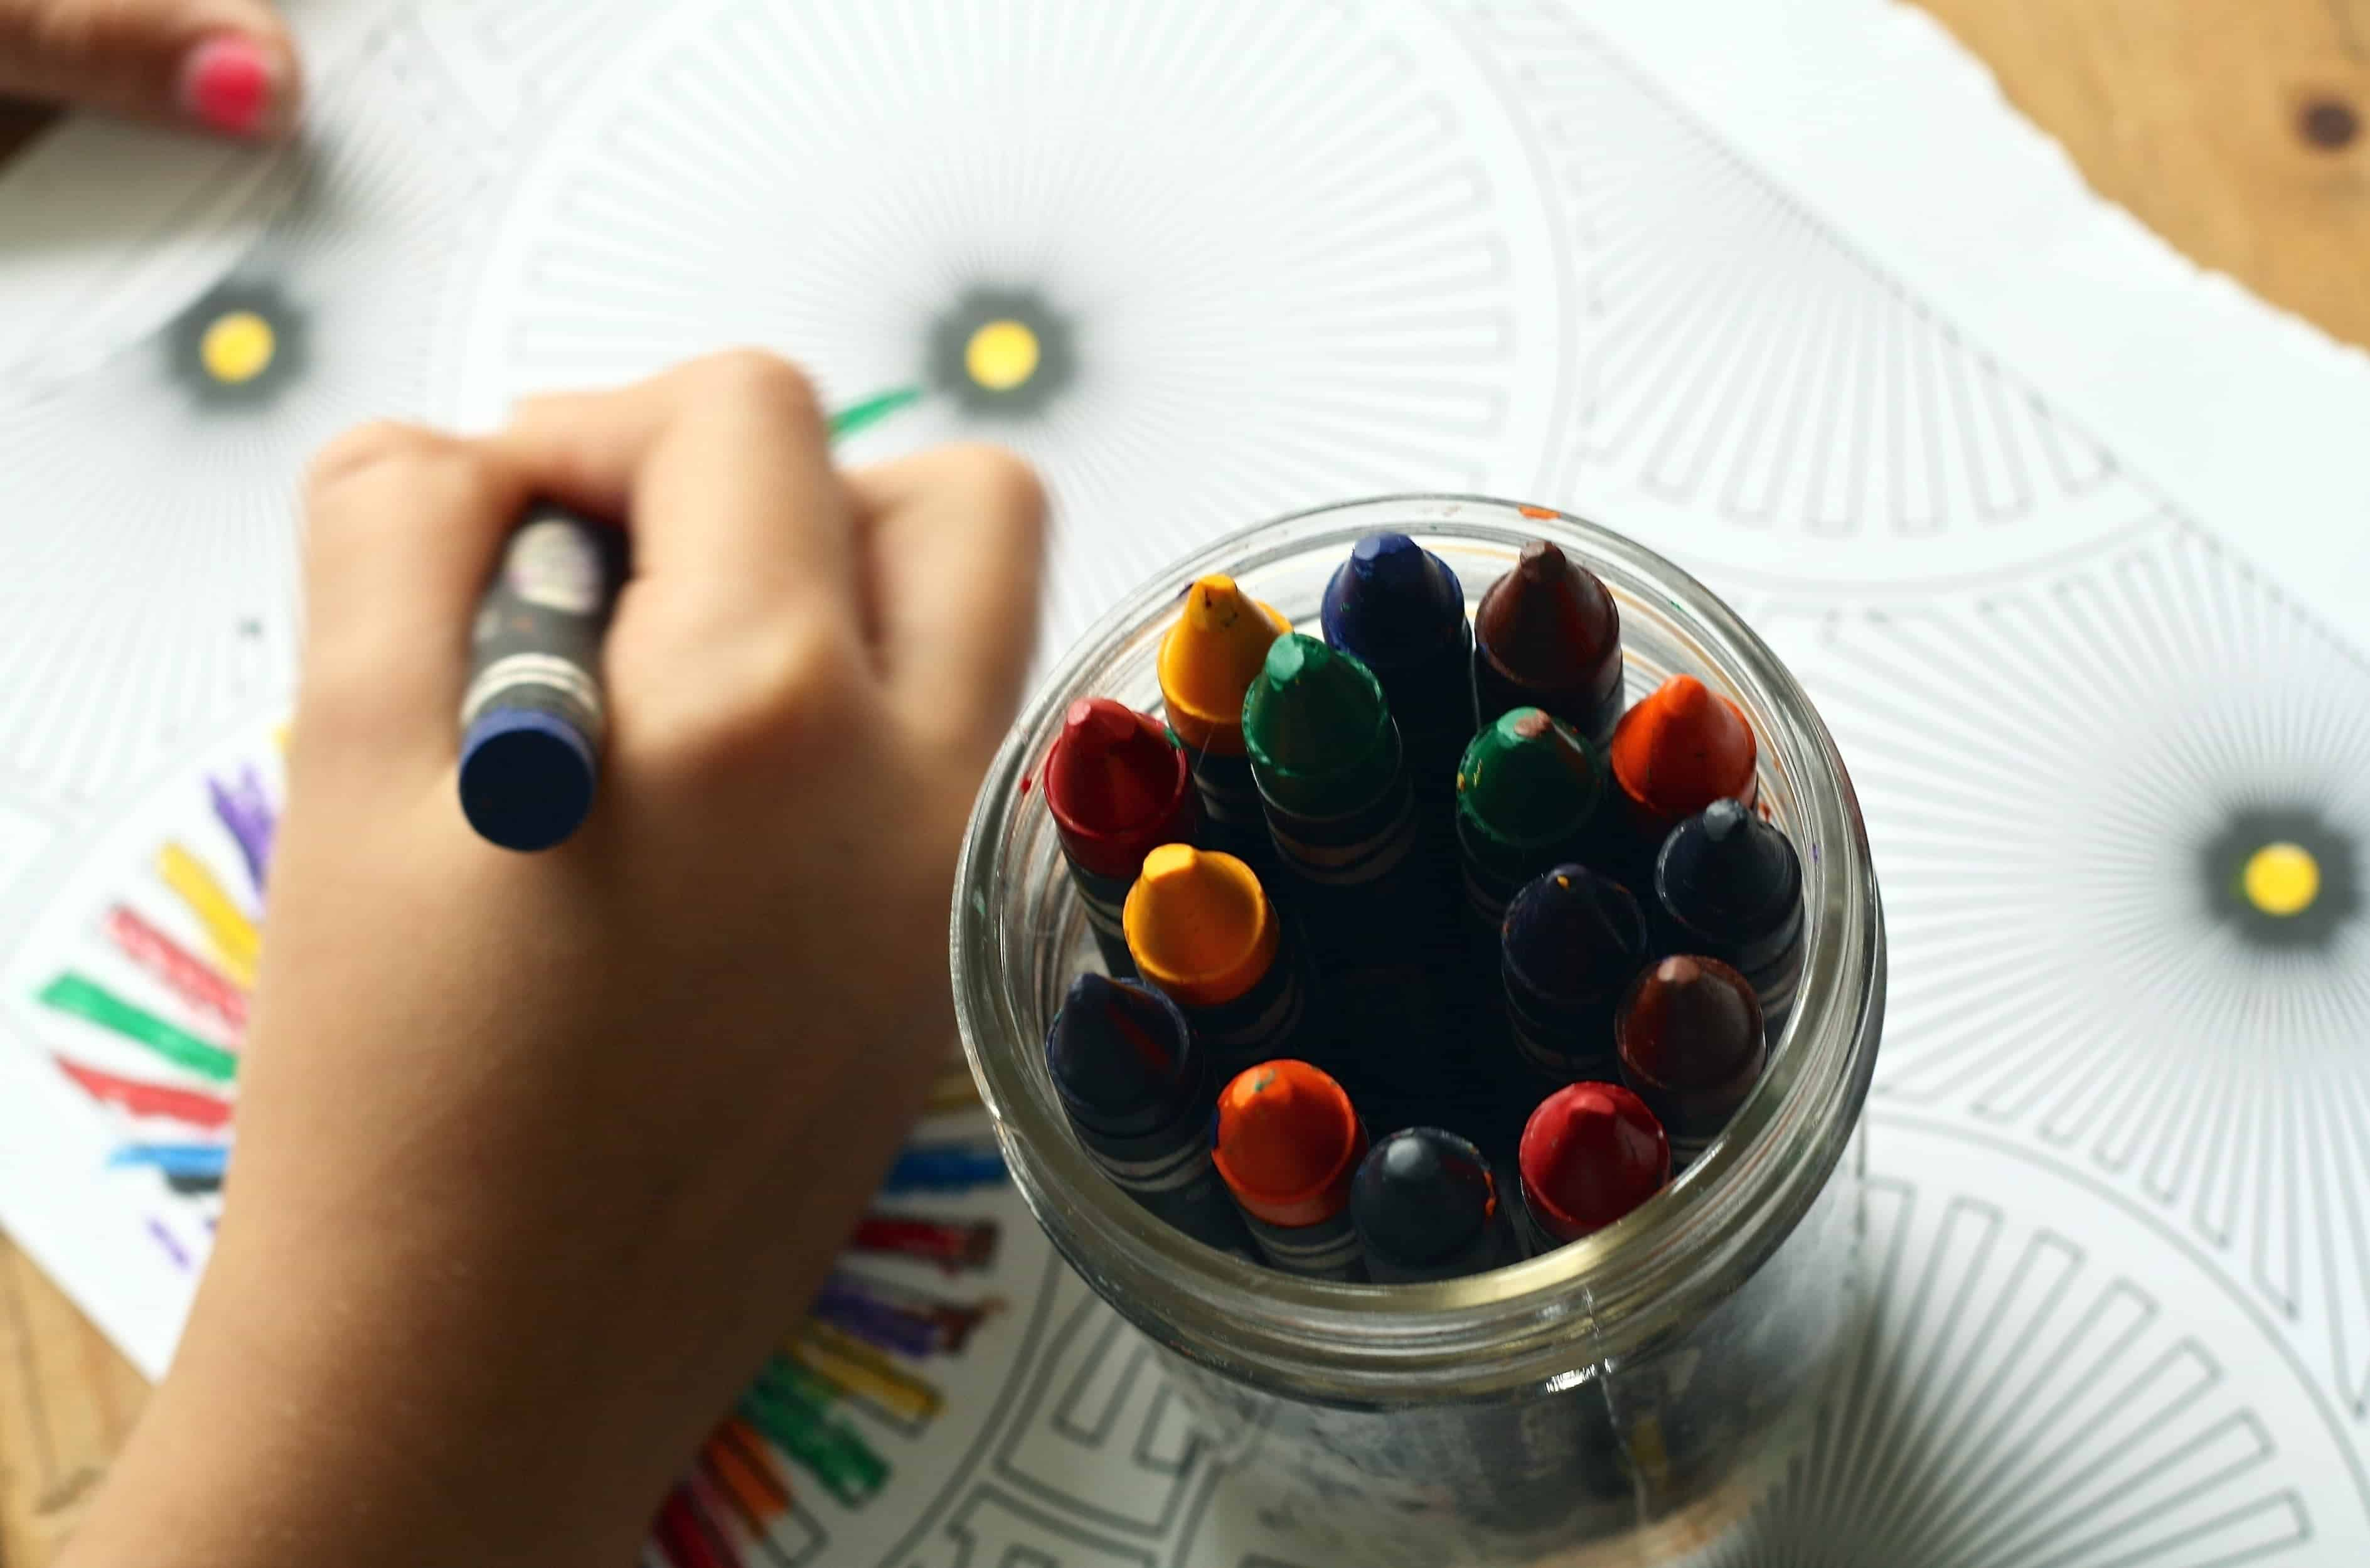 boy coloring with crayons on paper